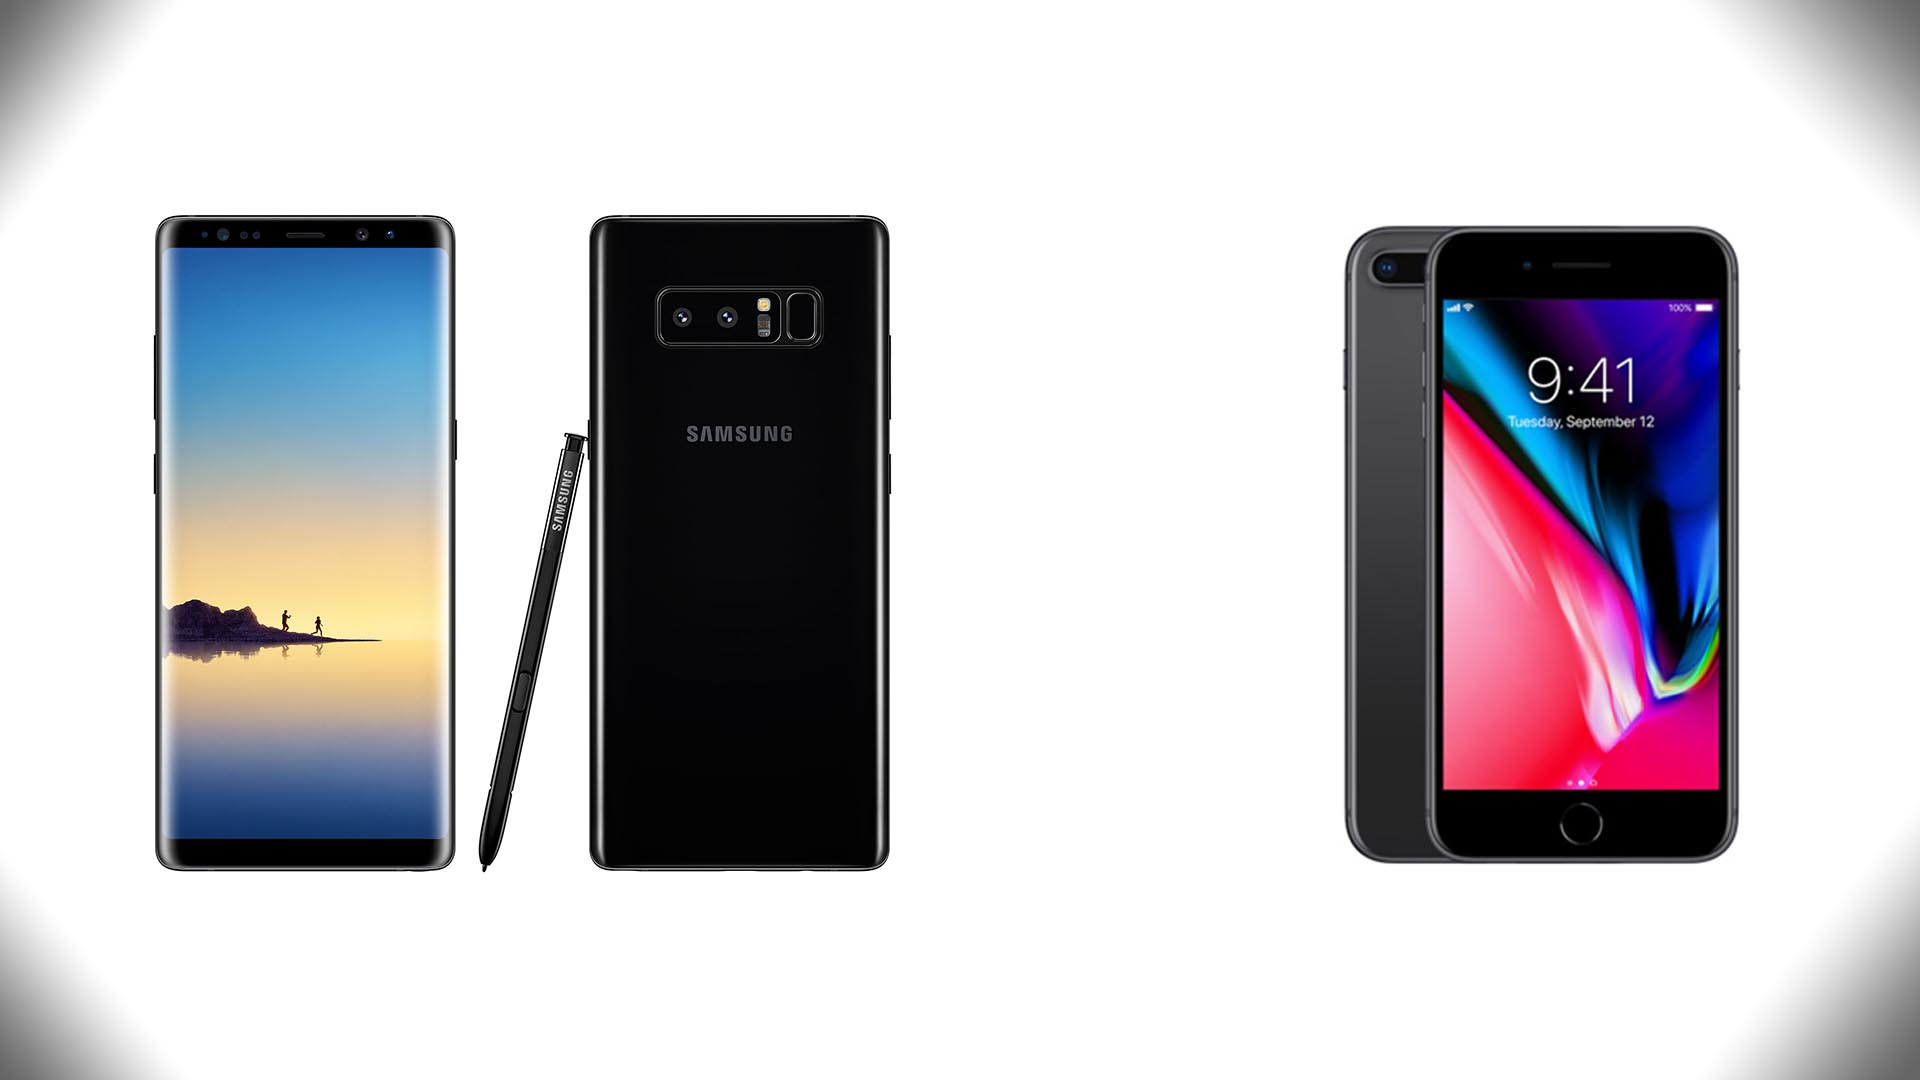 Galaxy Note 8 Edges Past Iphone 8 Plus In Real World Speed